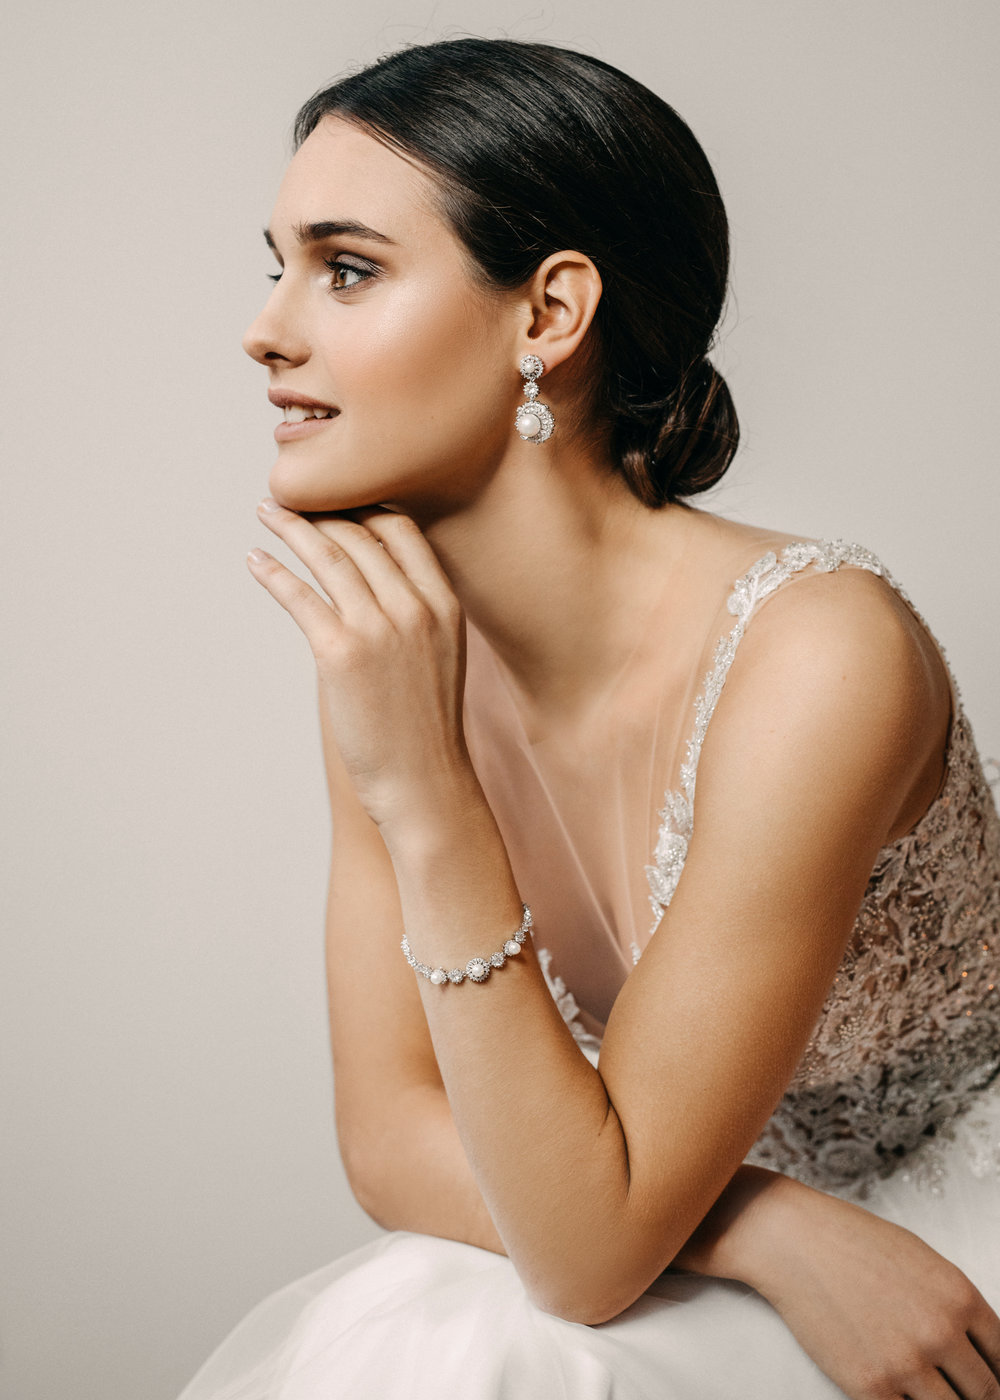 Find a perfect Gift For Bride - Headpieces and JewelleryHandmade in SwitzerlandUnique DesignPossibility to Rush OrdersFree Shipping WorldwideCustomisable OrdersFast response on your questions